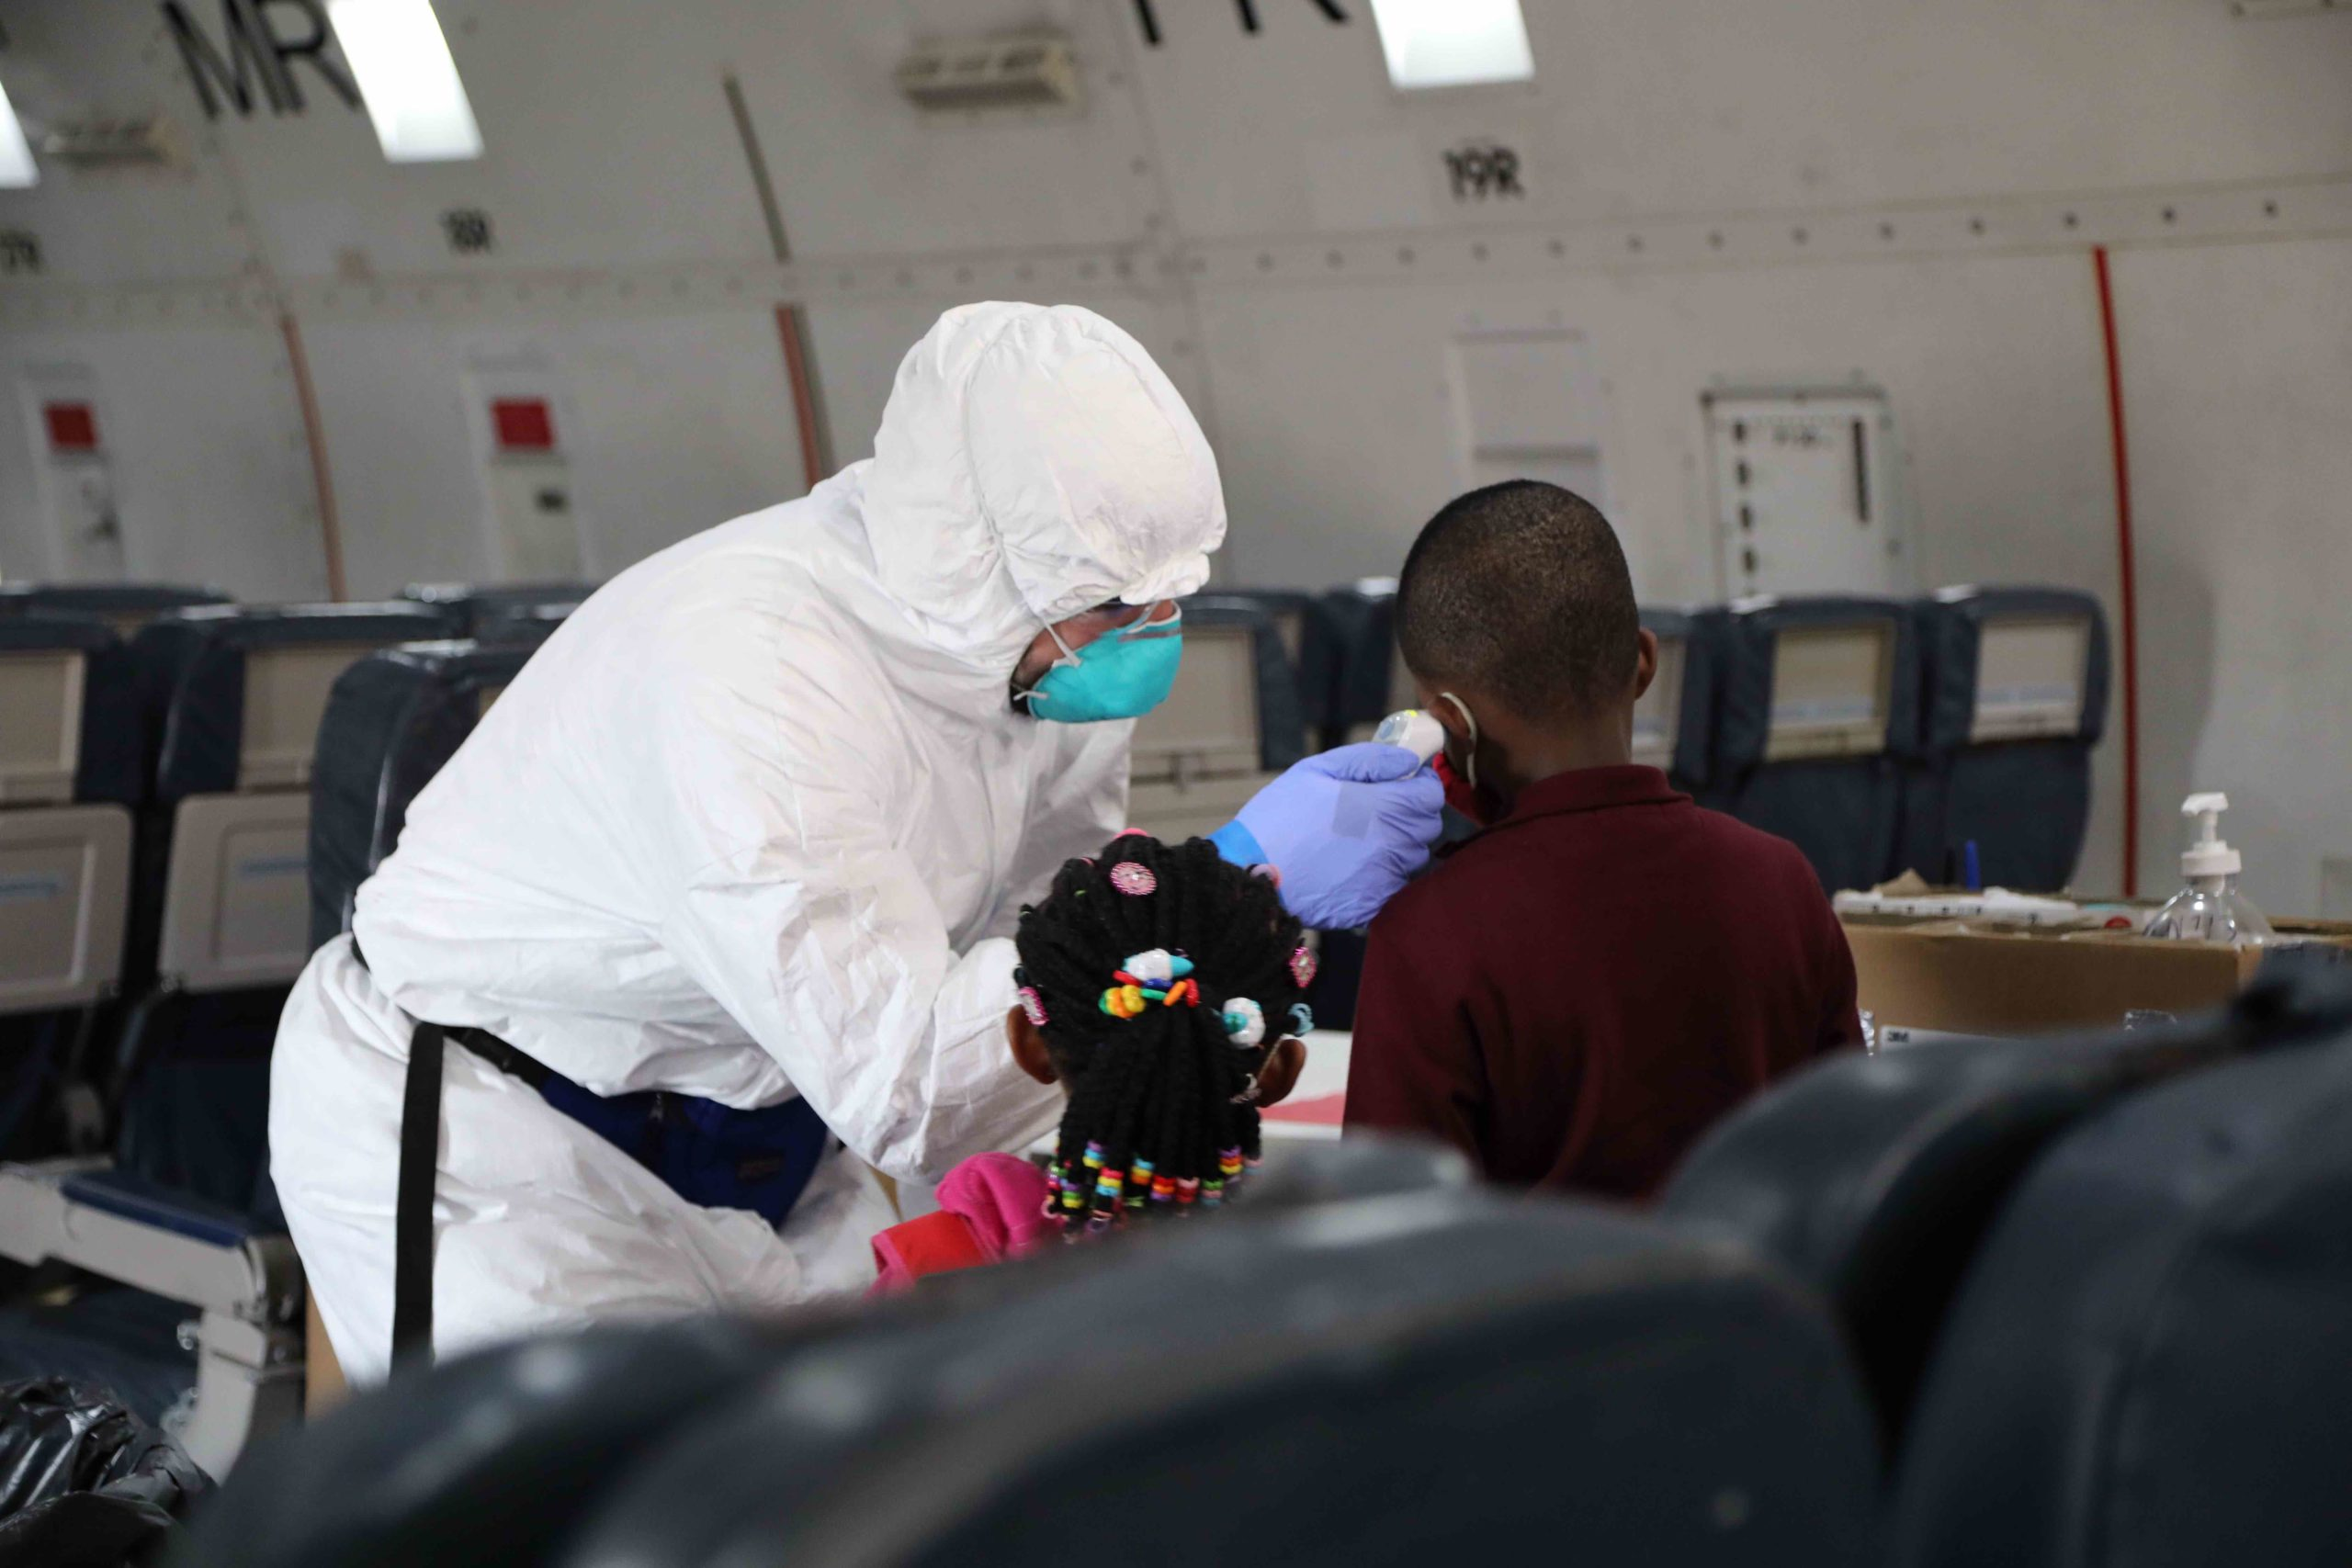 An Operational Medicine personnel takes the temperature of a passenger boarding in Cameroon. All passengers had a temperature check prior to departure.